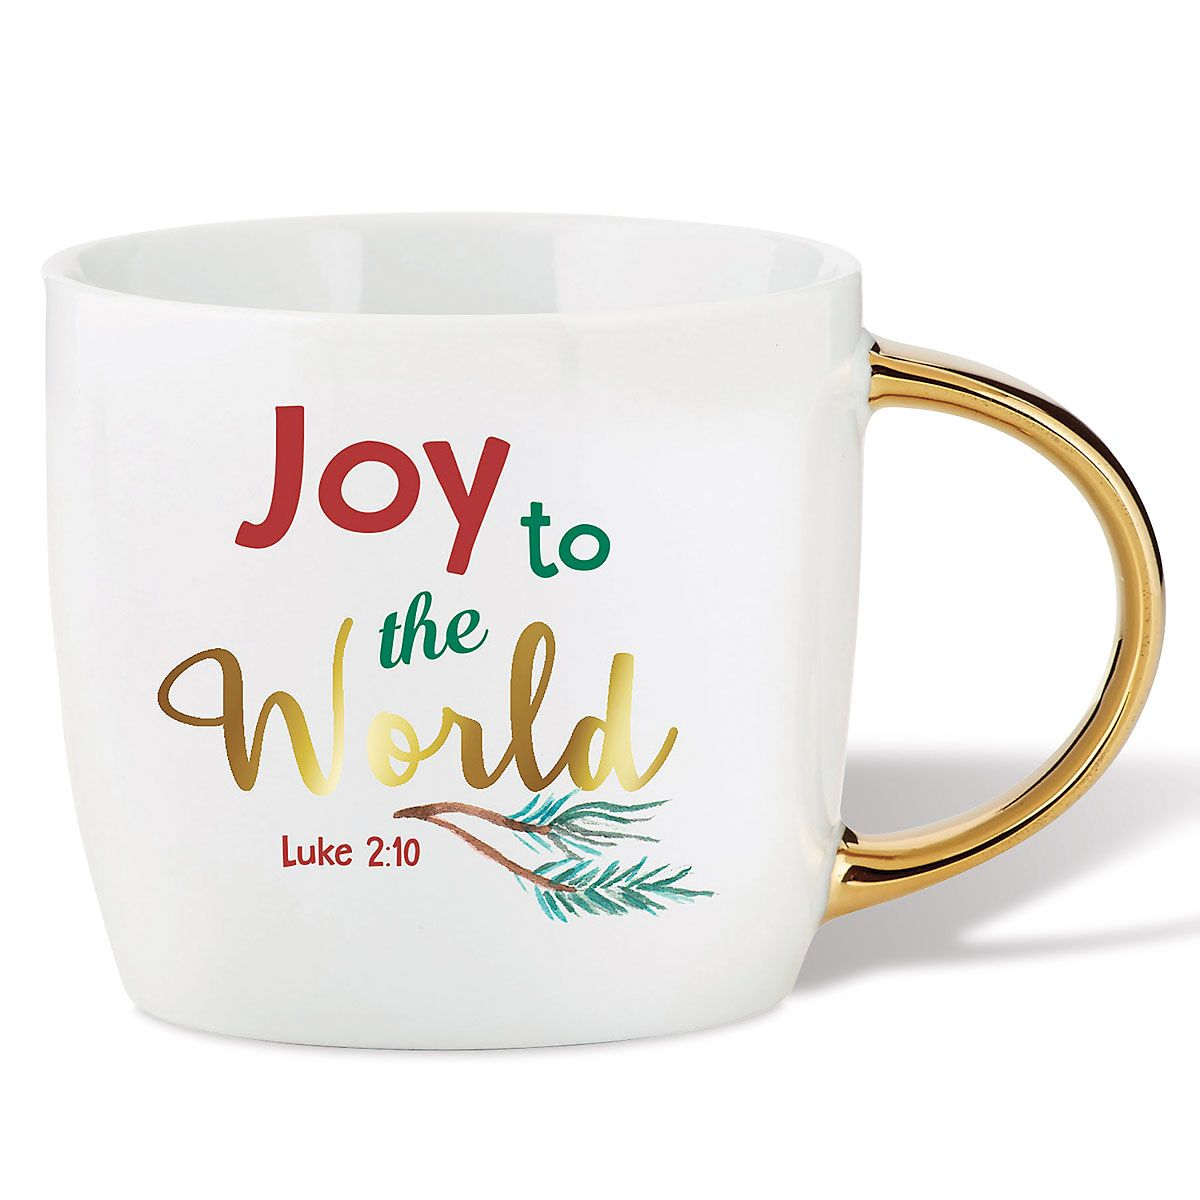 Joy to the World Mug